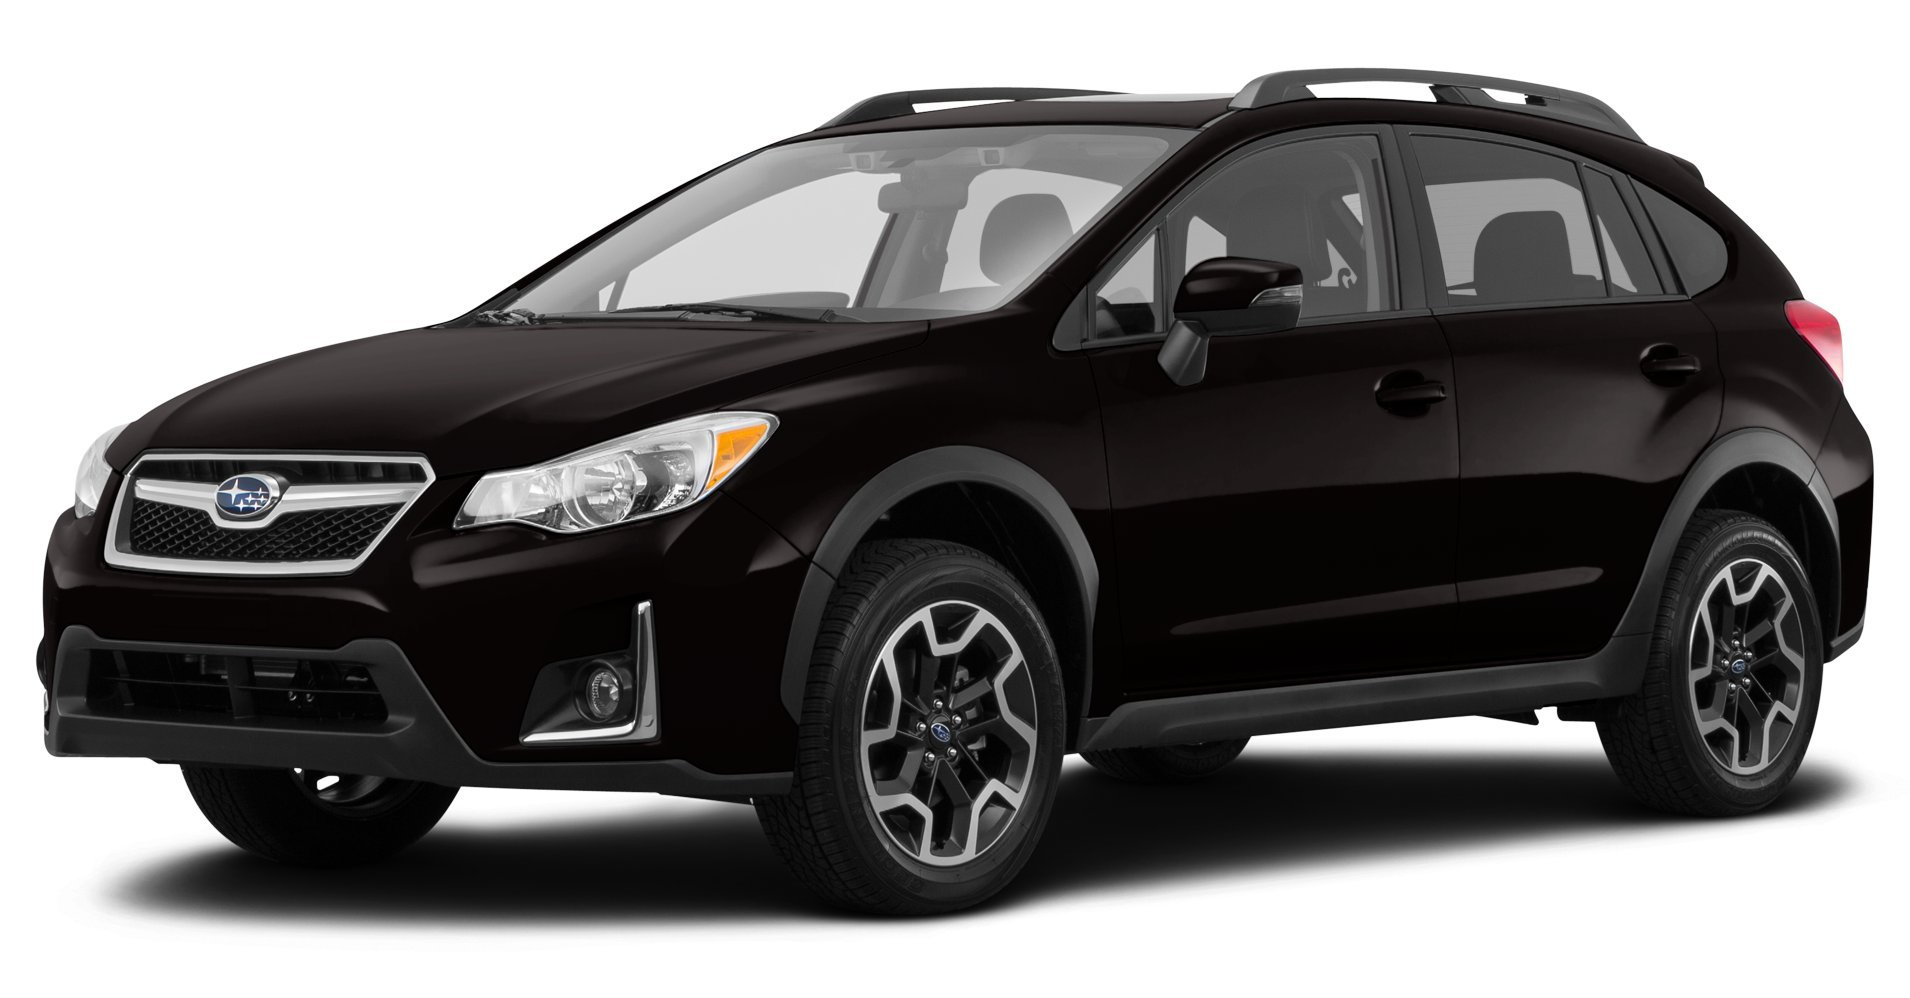 2016 subaru outback reviews images and specs vehicles. Black Bedroom Furniture Sets. Home Design Ideas